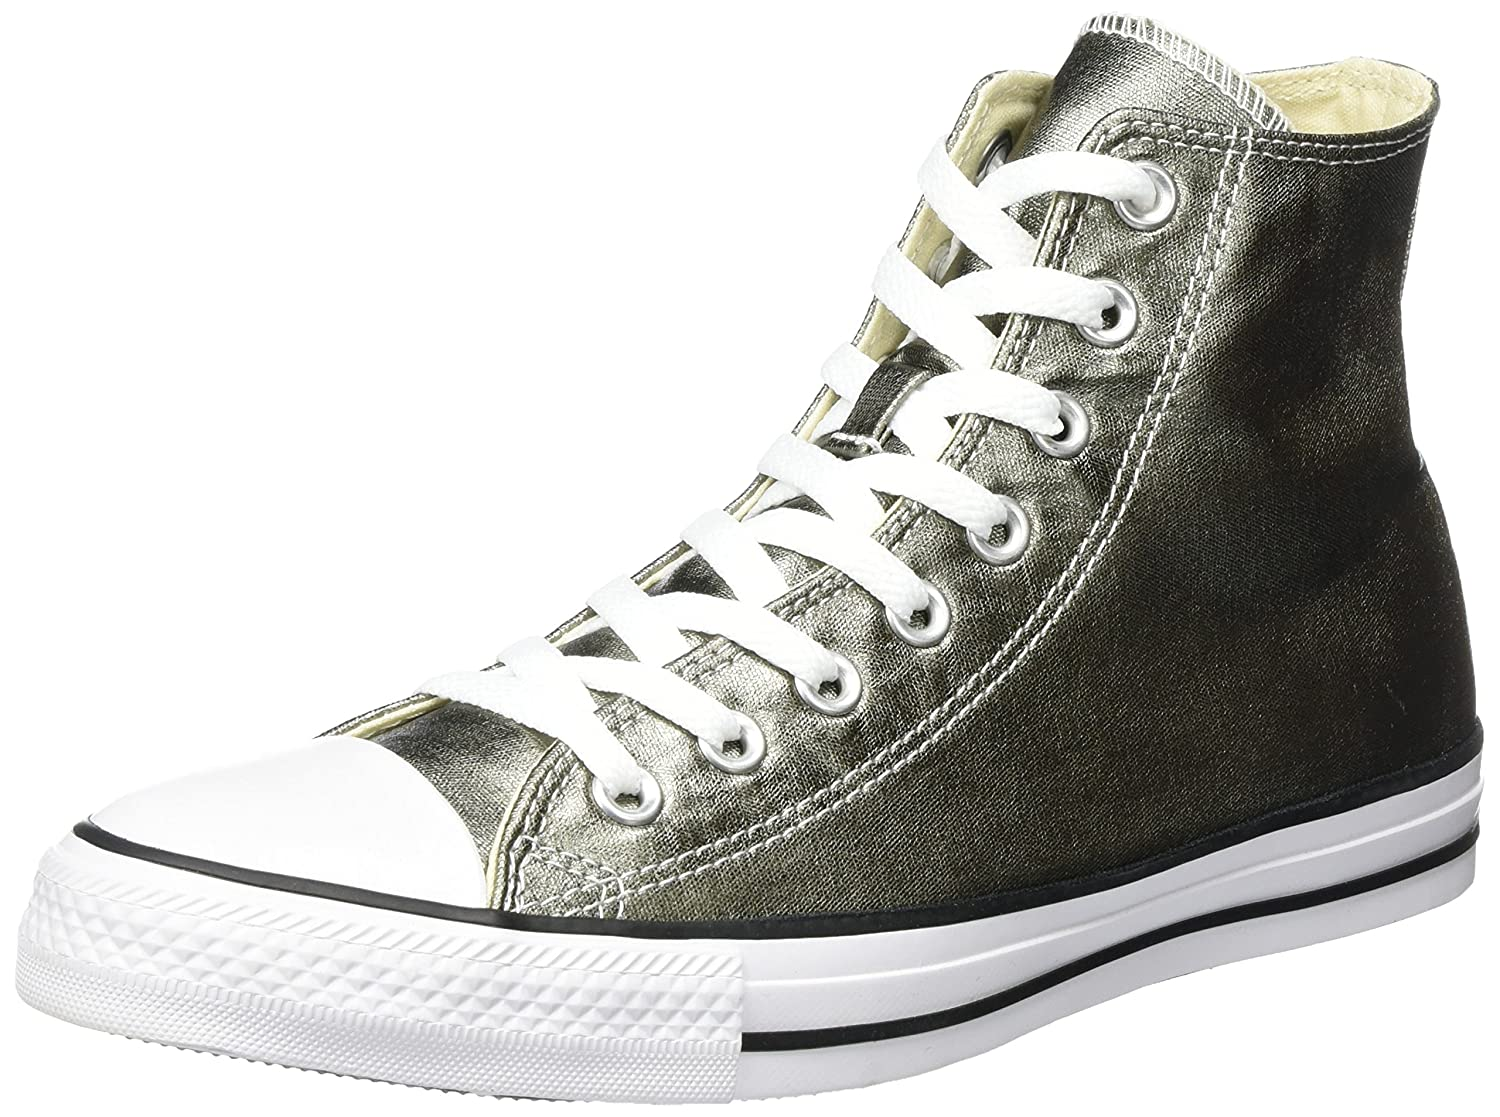 Converse Chuck Taylor All Star Zapatillas abotinadas Unisex adulto